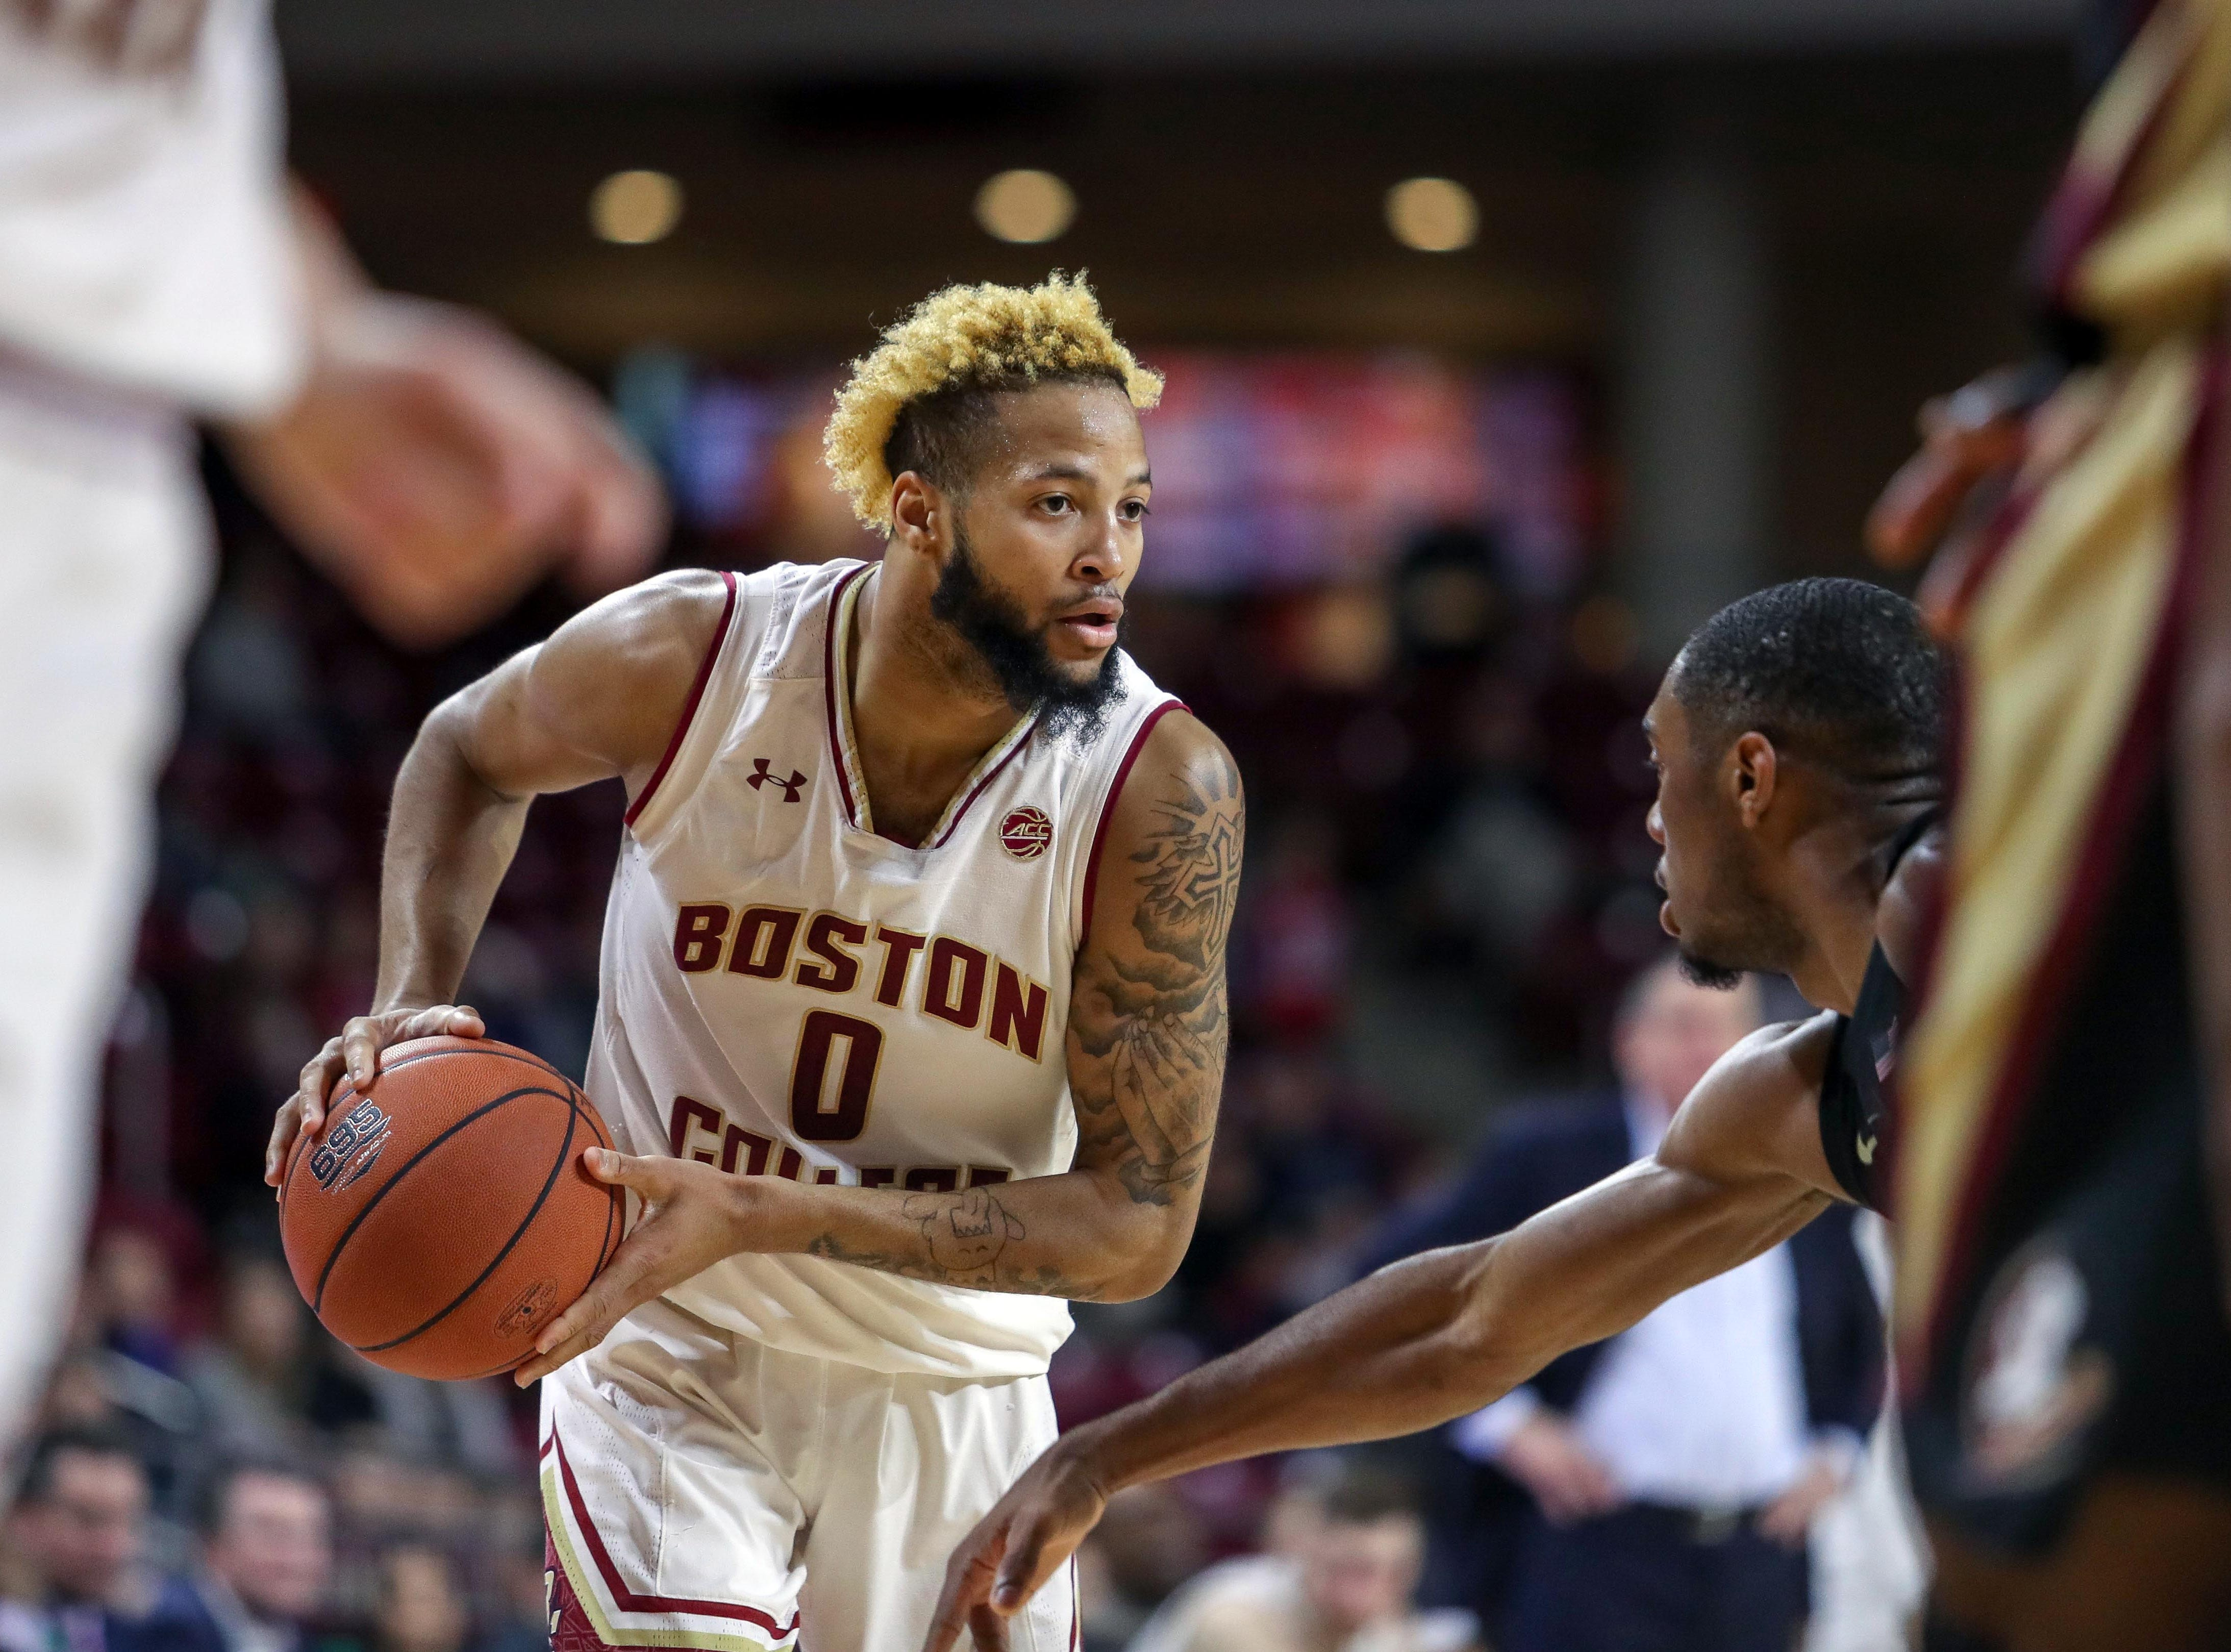 Jan 20, 2019; Chestnut Hill, MA, USA; Boston College Eagles guard Ky Bowman (0) looks to pass against the Florida State Seminoles during the first half at Conte Forum. Mandatory Credit: Paul Rutherford-USA TODAY Sports